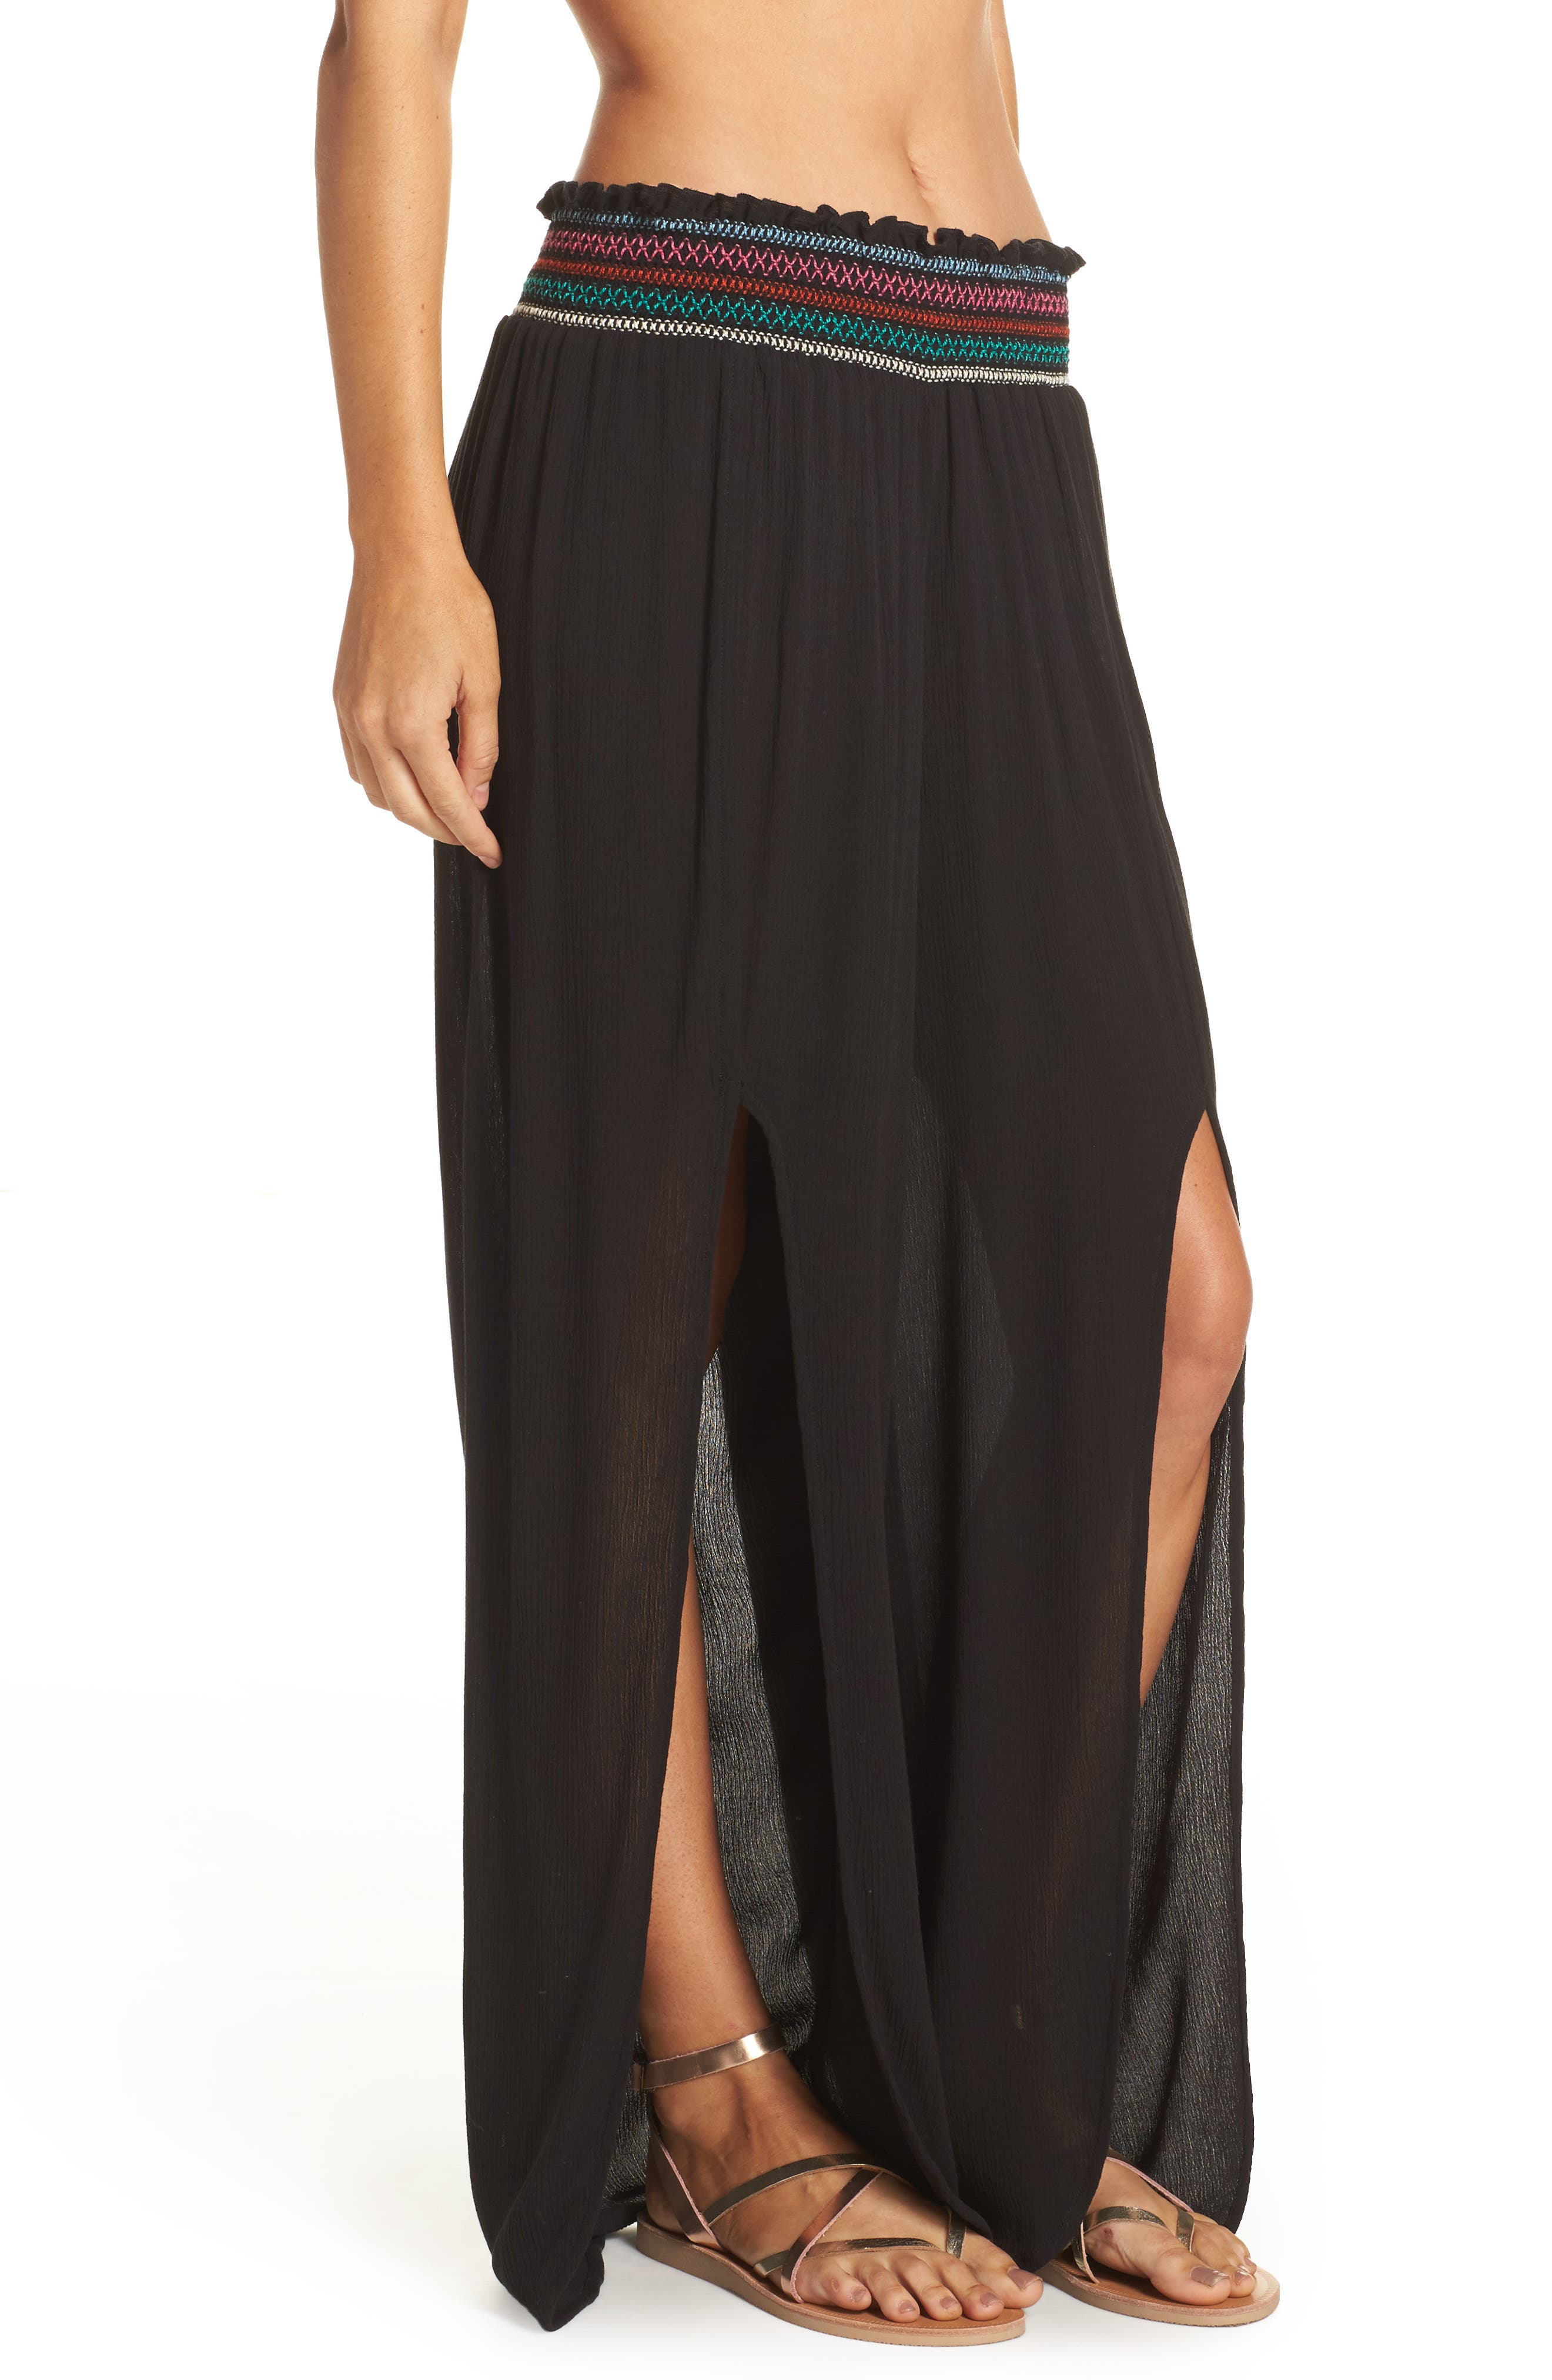 Crystal Cove Cover-Up Pants,                             Alternate thumbnail 3, color,                             Black